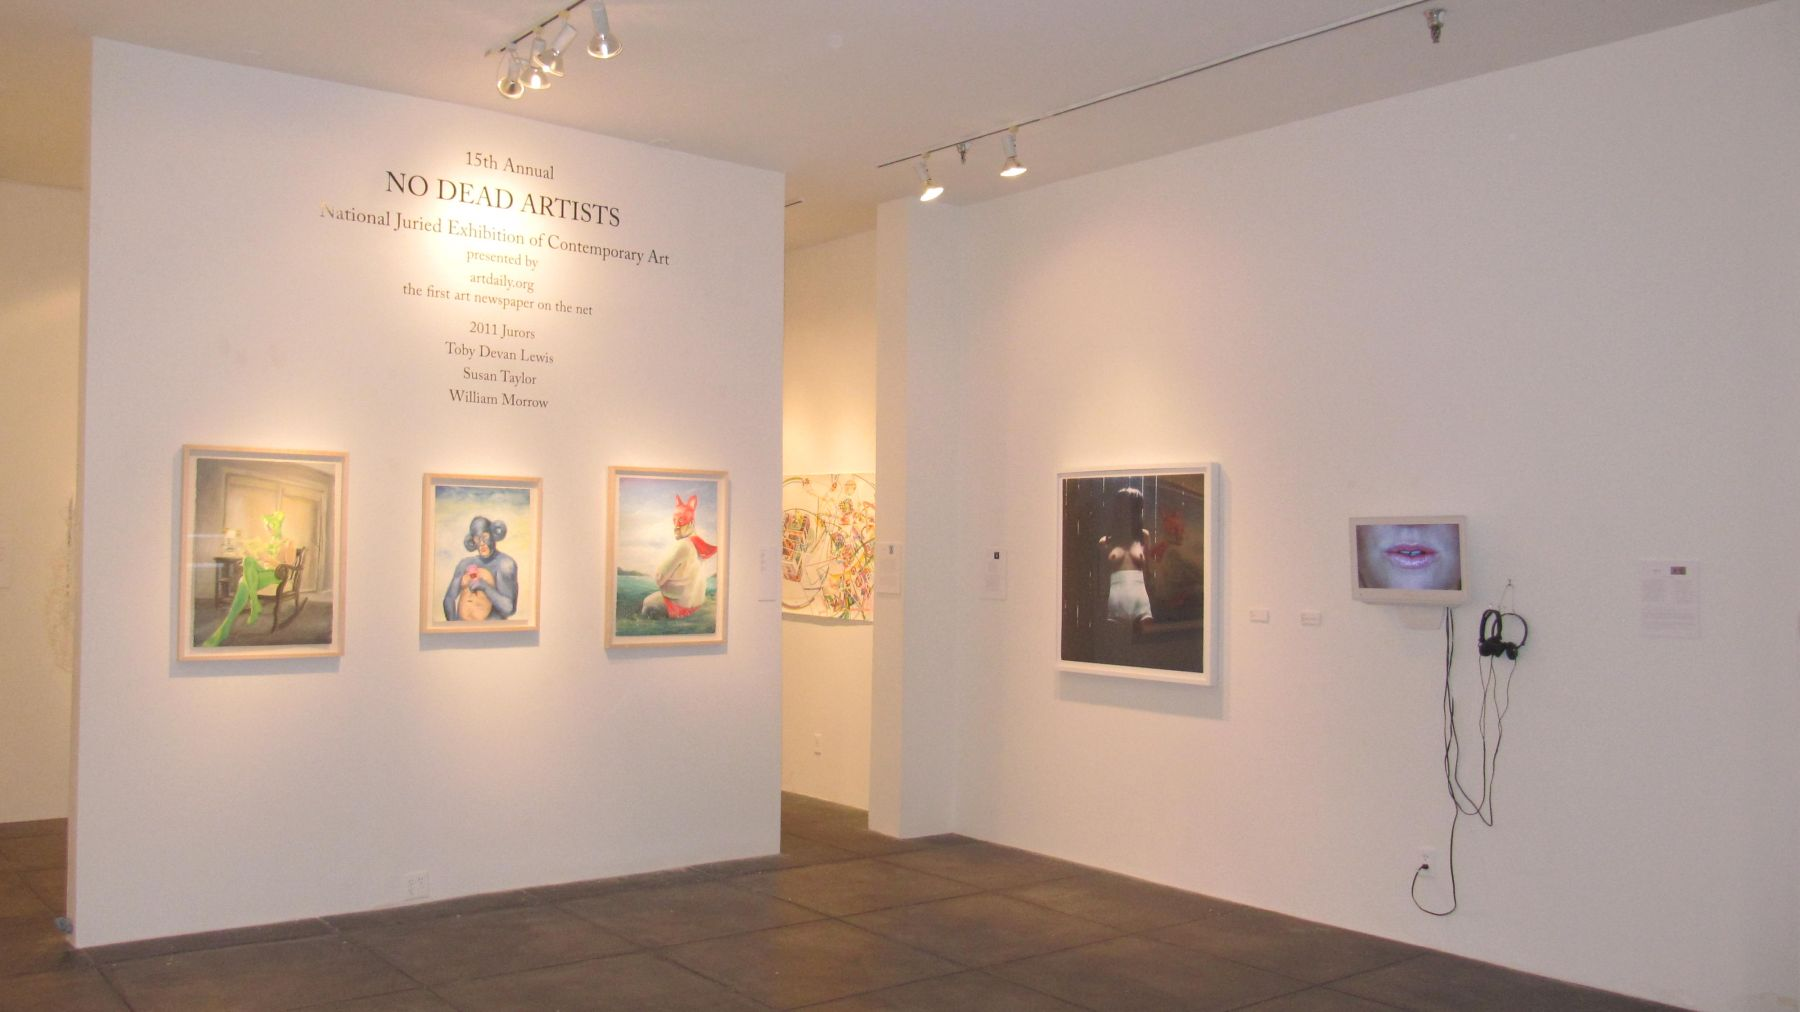 NO DEAD ARTISTS III 15th Annual National Juried Exhibition of Contemporary Art, [Main Gallery Installation View]